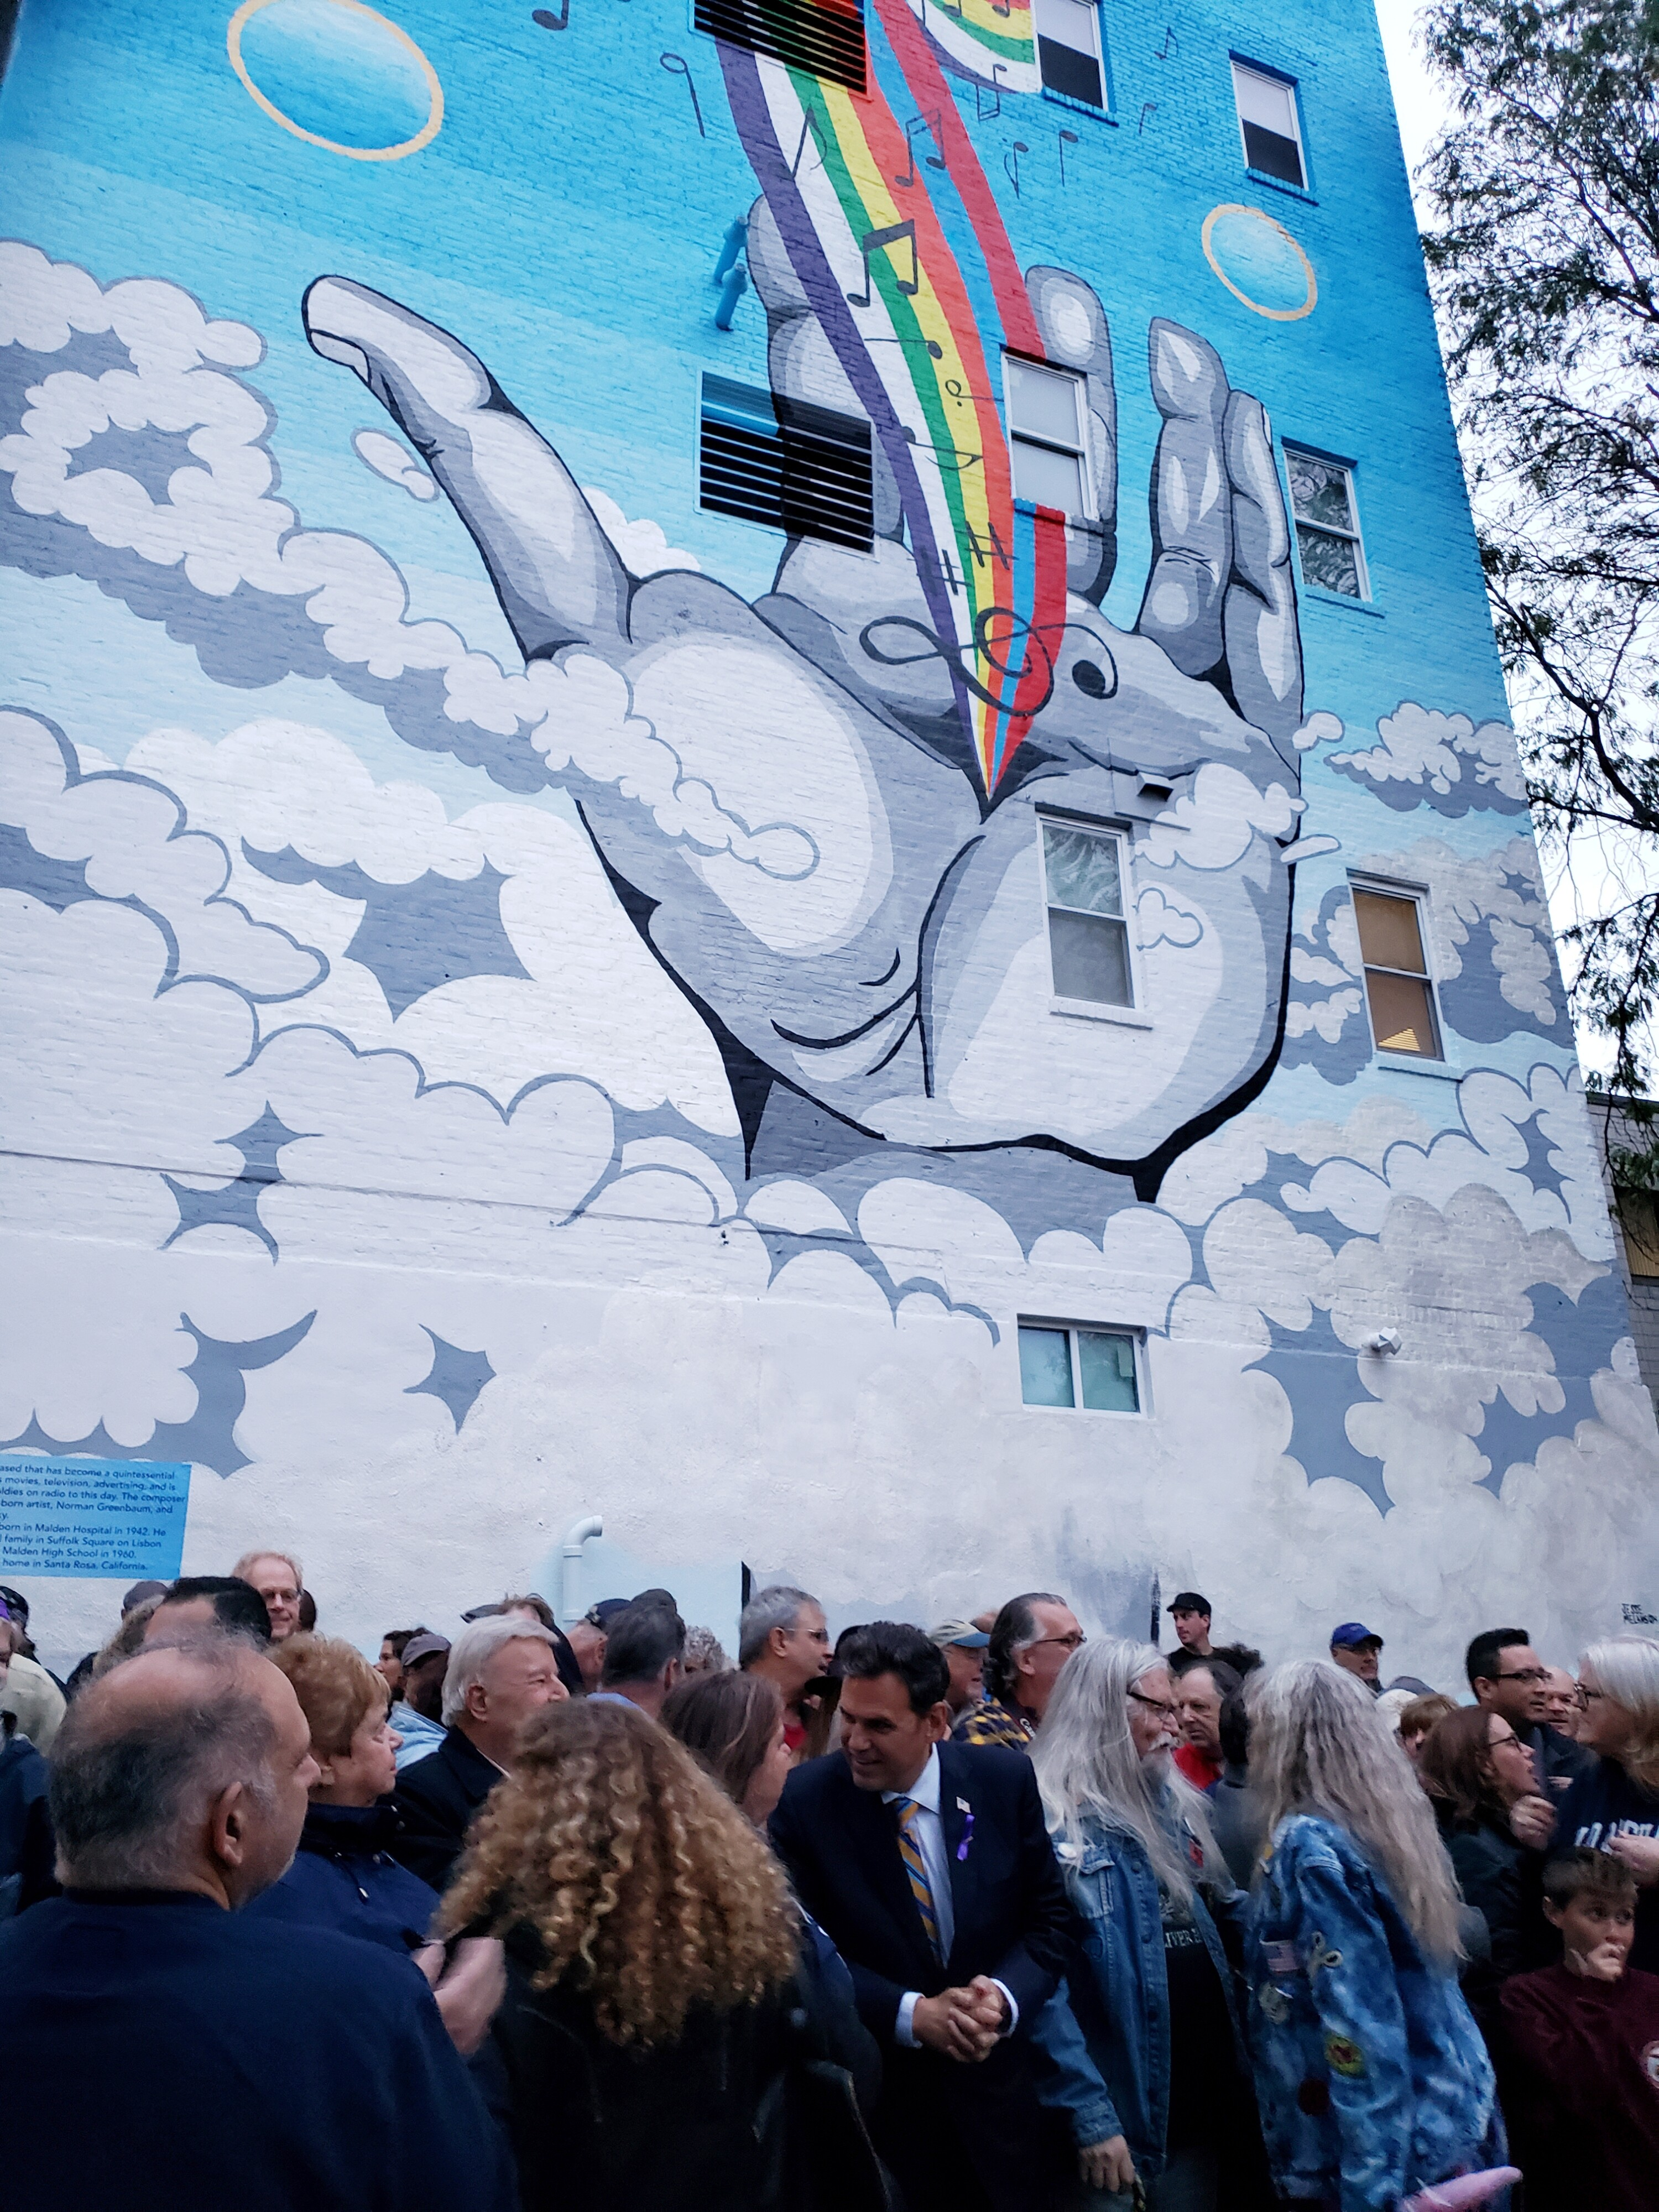 Malden Mayor Gary Christenson in the center of the crowd at the mural (Photo: Susie Davidson)